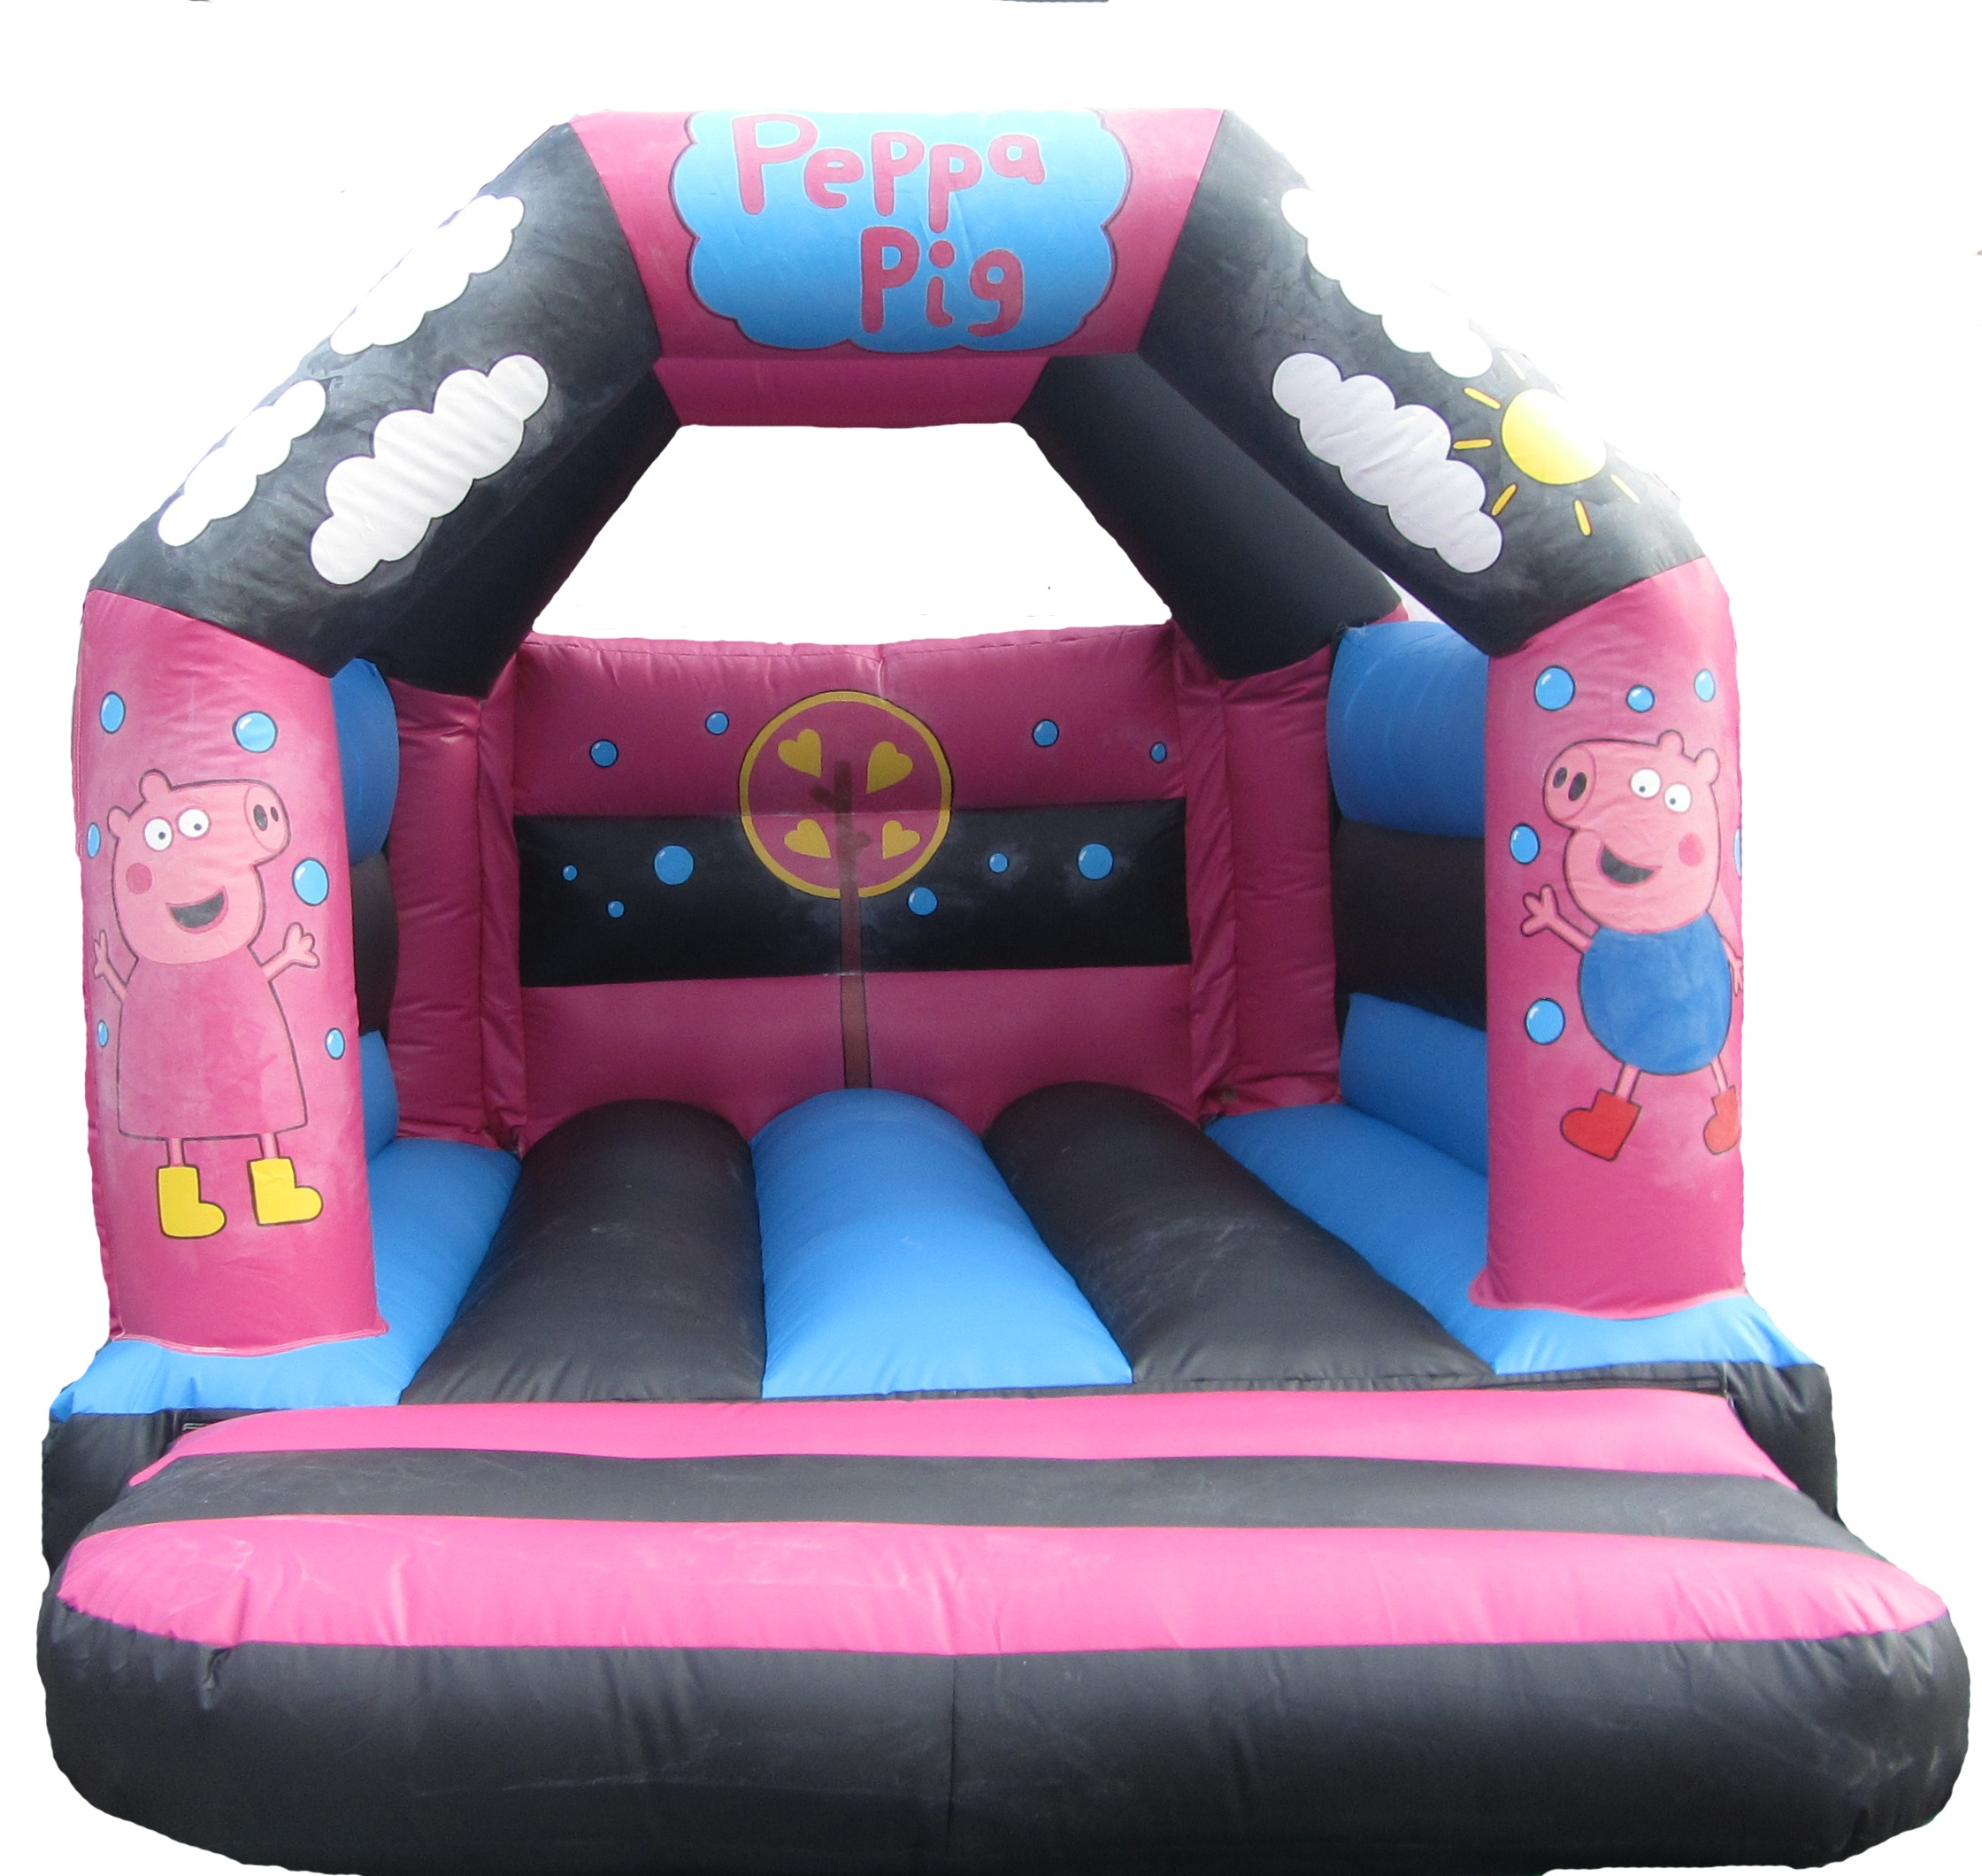 peppa pig bouncy castle dereham peppa pig bouncy castle norwich peppa pig bouncy castle swaffham peppa pig bouncy castle watton peppa pig bouncy castle wymondham peppa pig bouncy castle attleborough peppa pig bouncy castle fakenham peppa pig bouncy castle norfolk